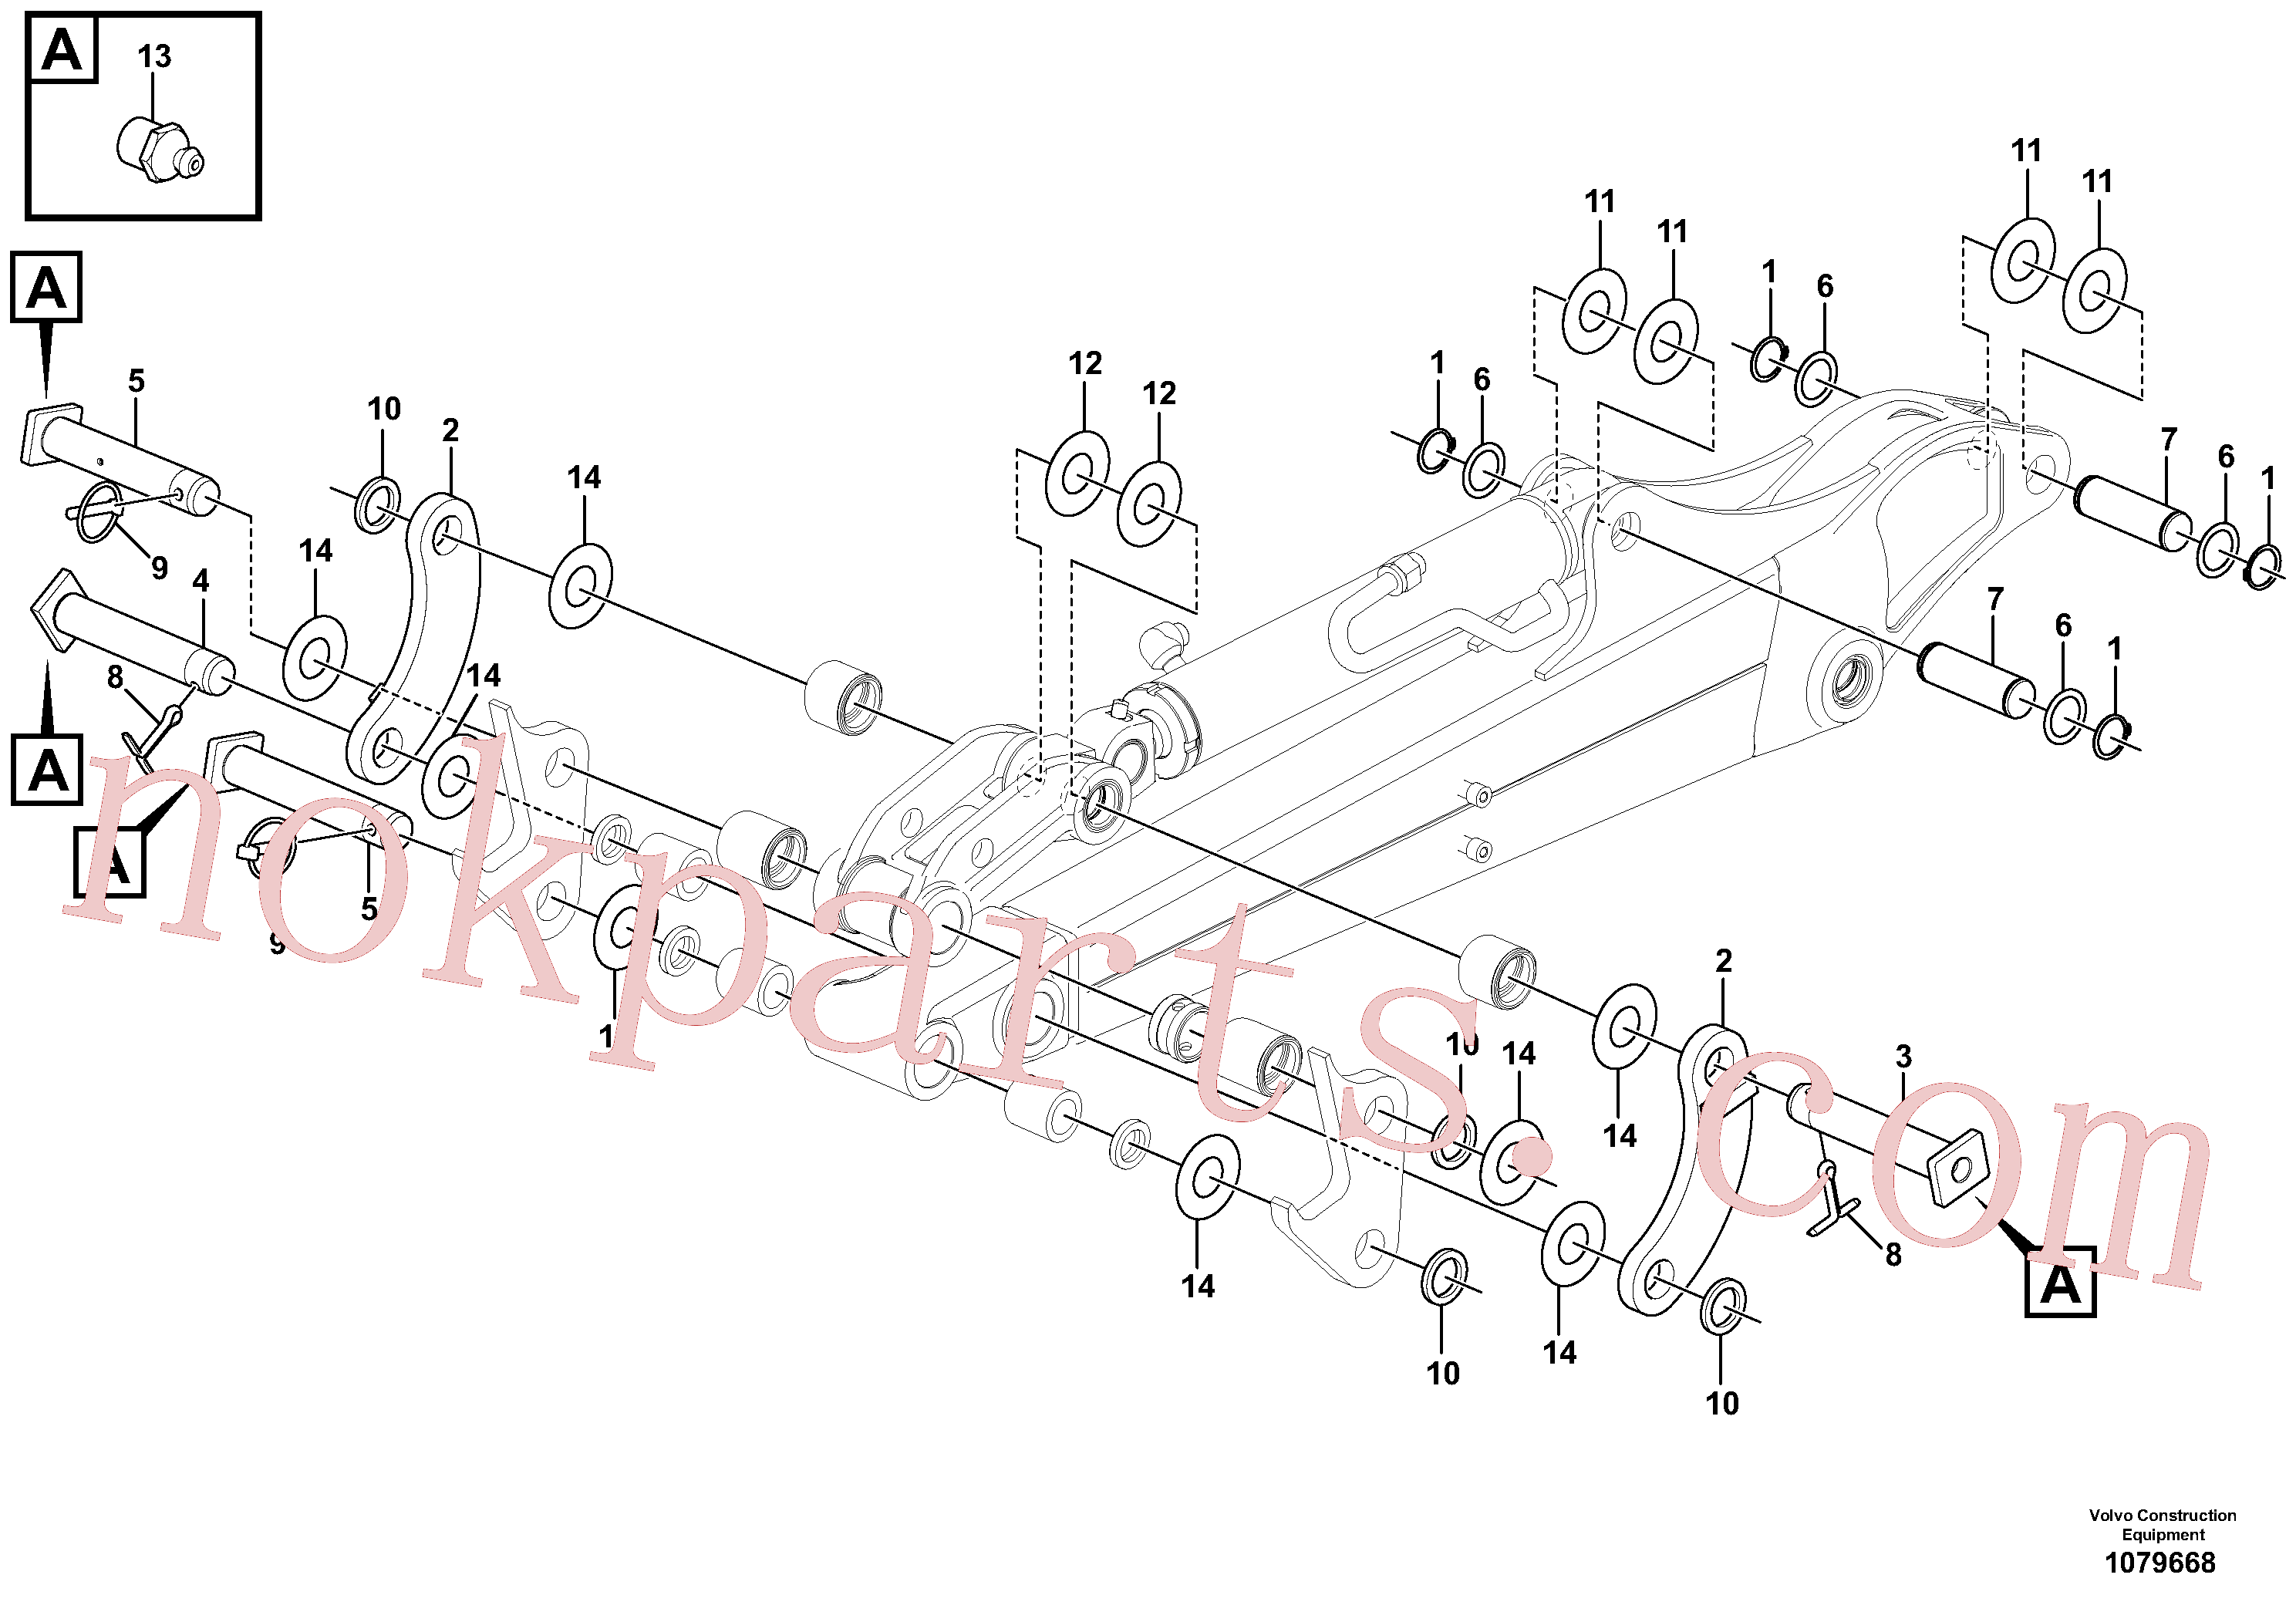 VOE11800196 for Volvo Links to dipper arm(1079668 assembly)